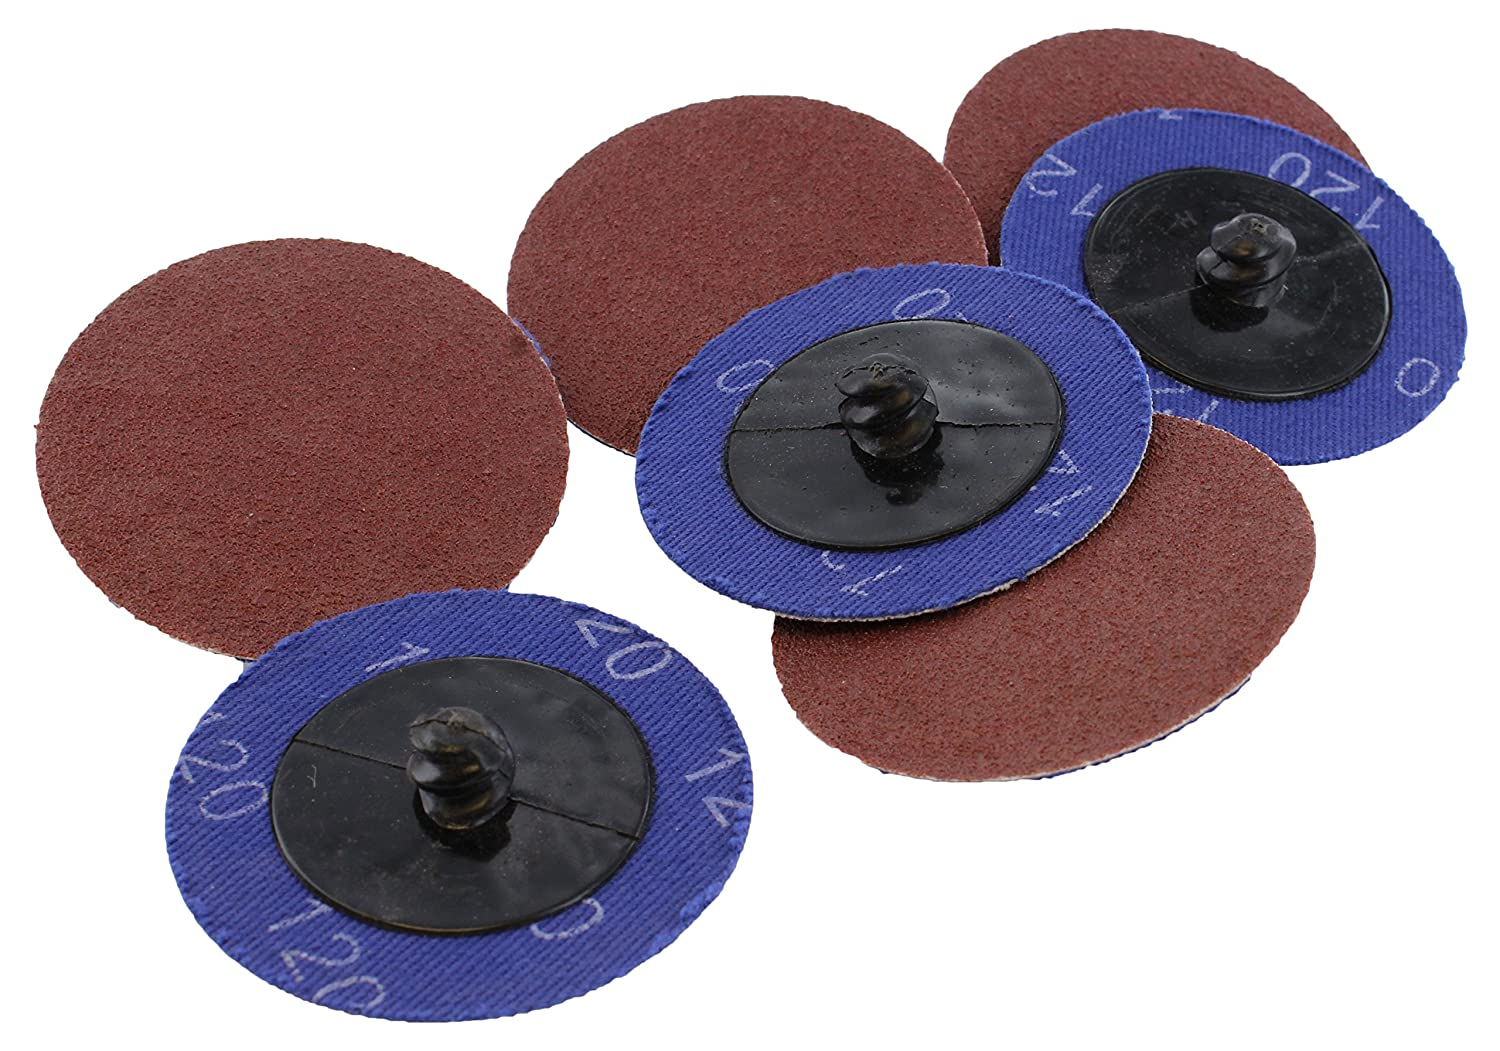 ABN Aluminum Oxide Roloc Abrasive Sanding Discs 50-Pack, 2in, 120 Grit – Metal Wheels for Surface Prep and Finishing 91yWQede8fL